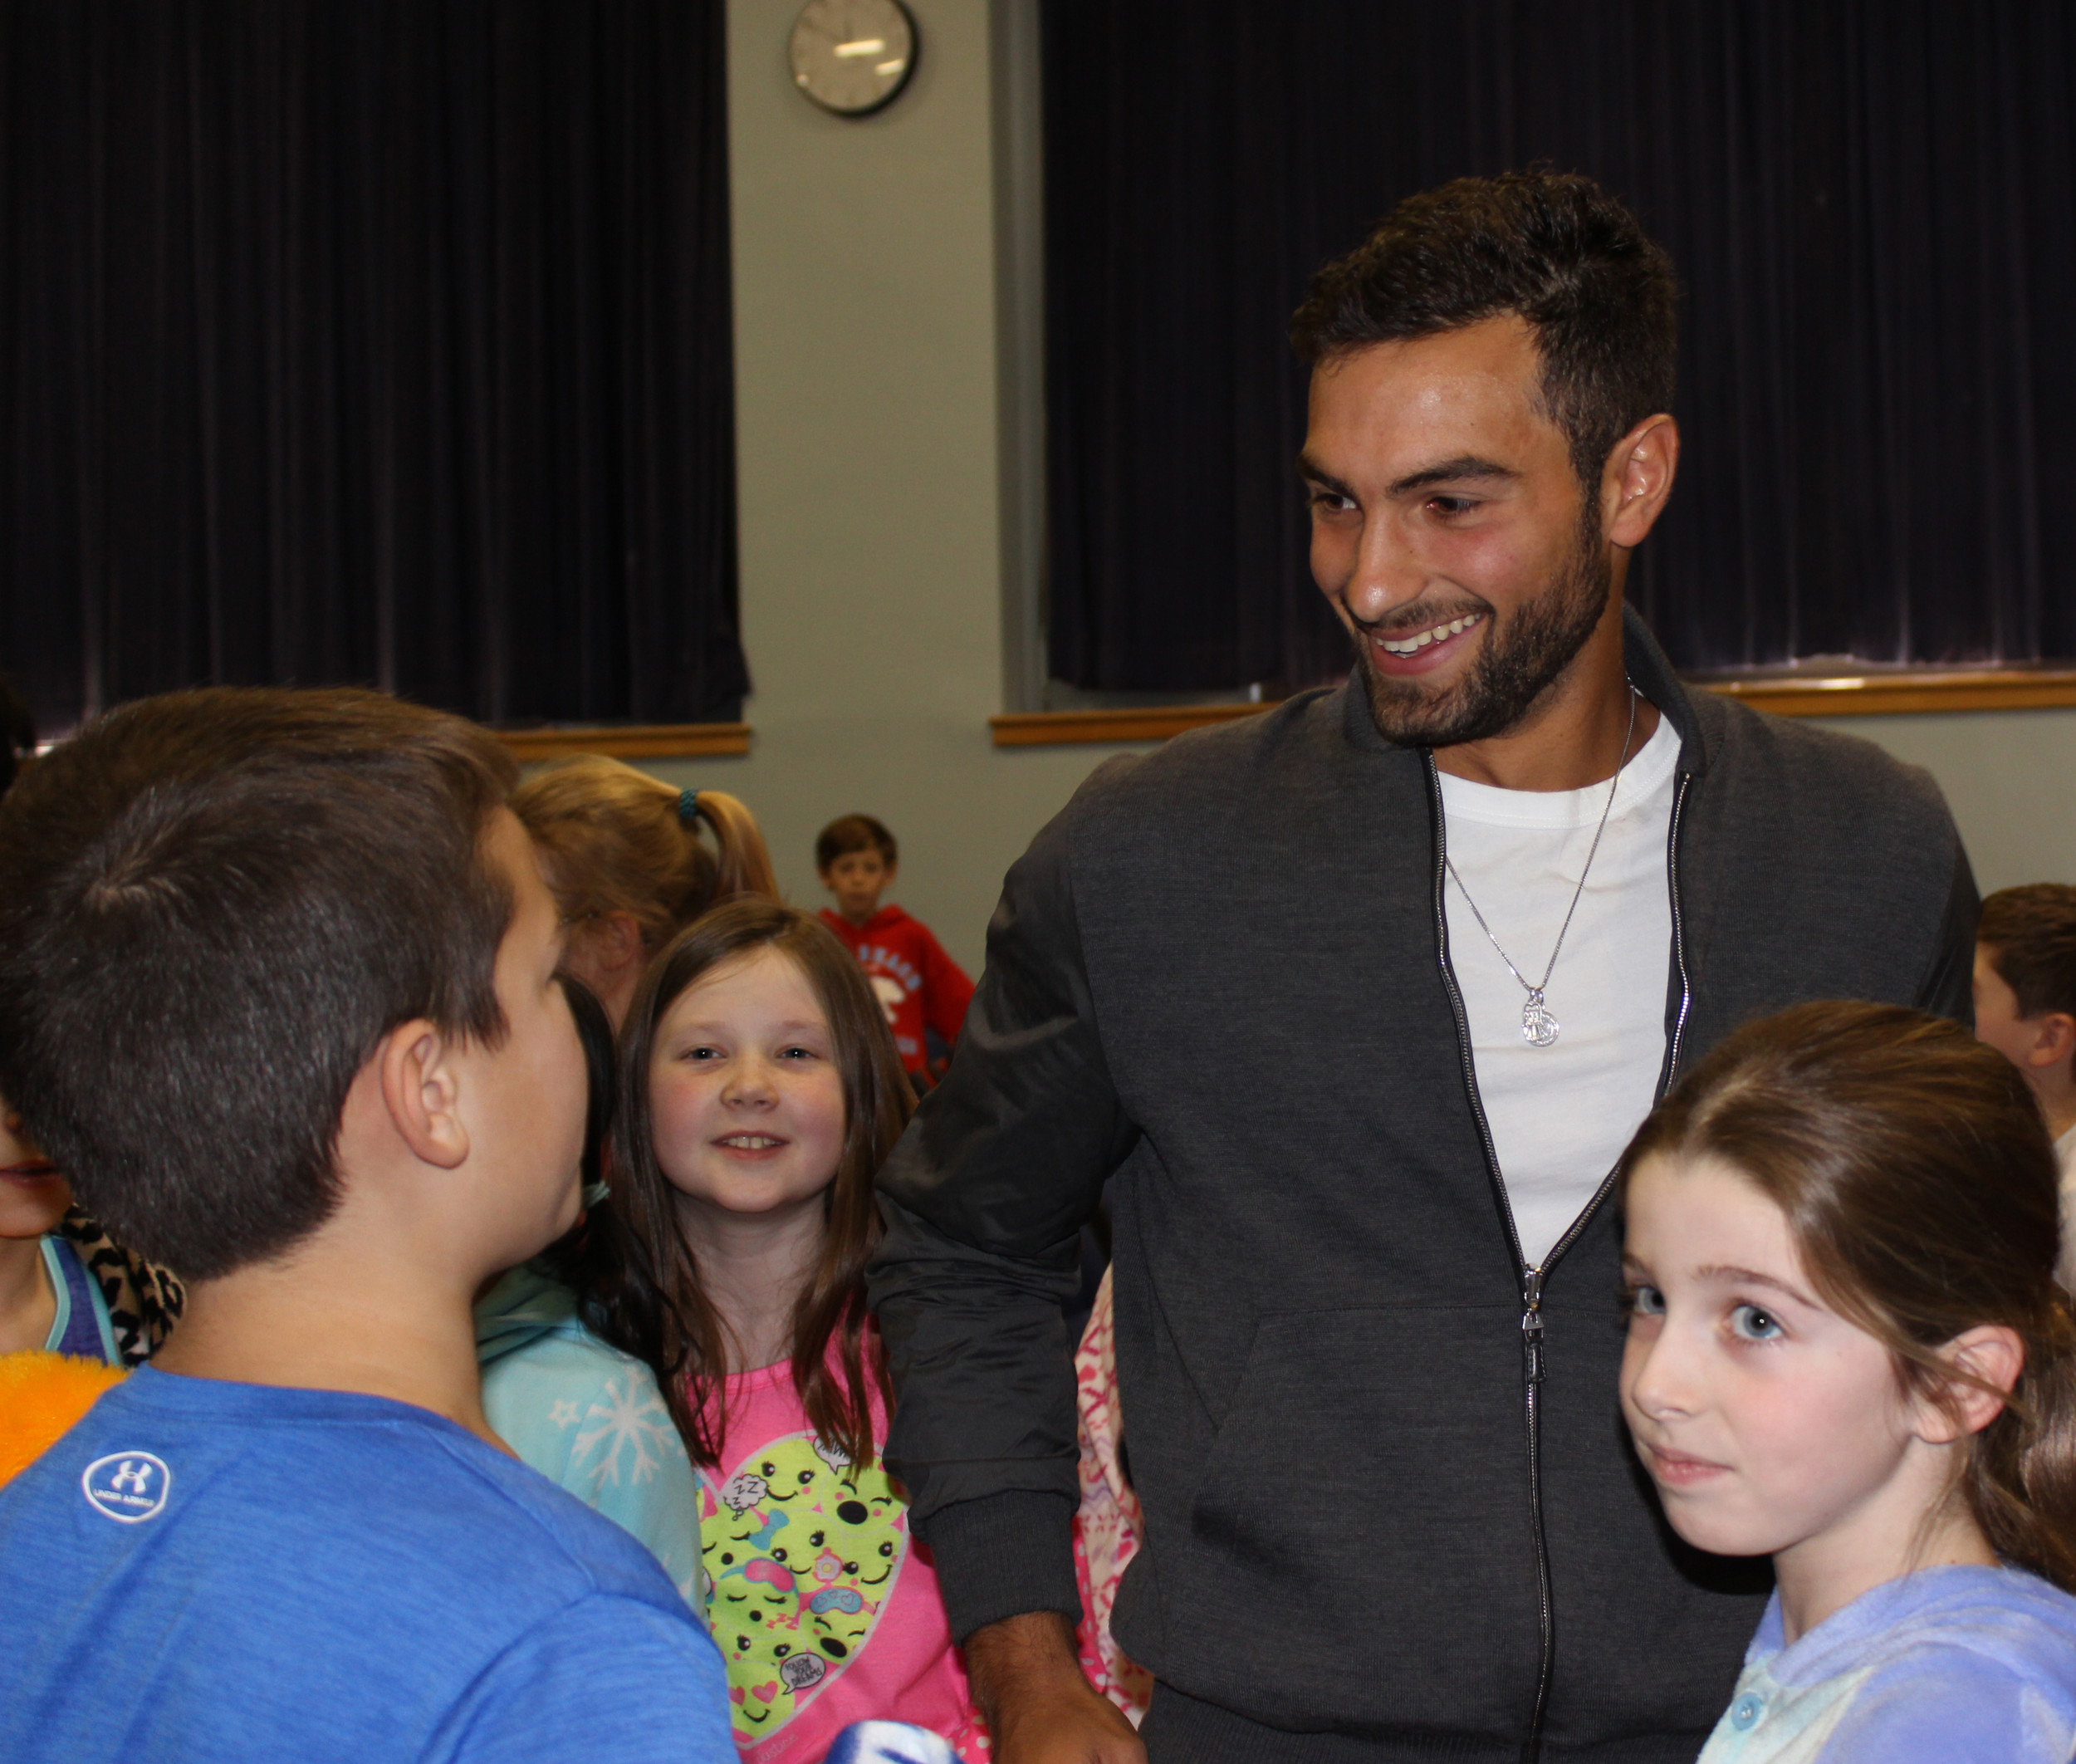 Noah Rubin greeted fourth- and fifth-grade students at Covert Elementary School in Rockville Centre, where his mother, Melanie Rubin, is a special-education teacher.